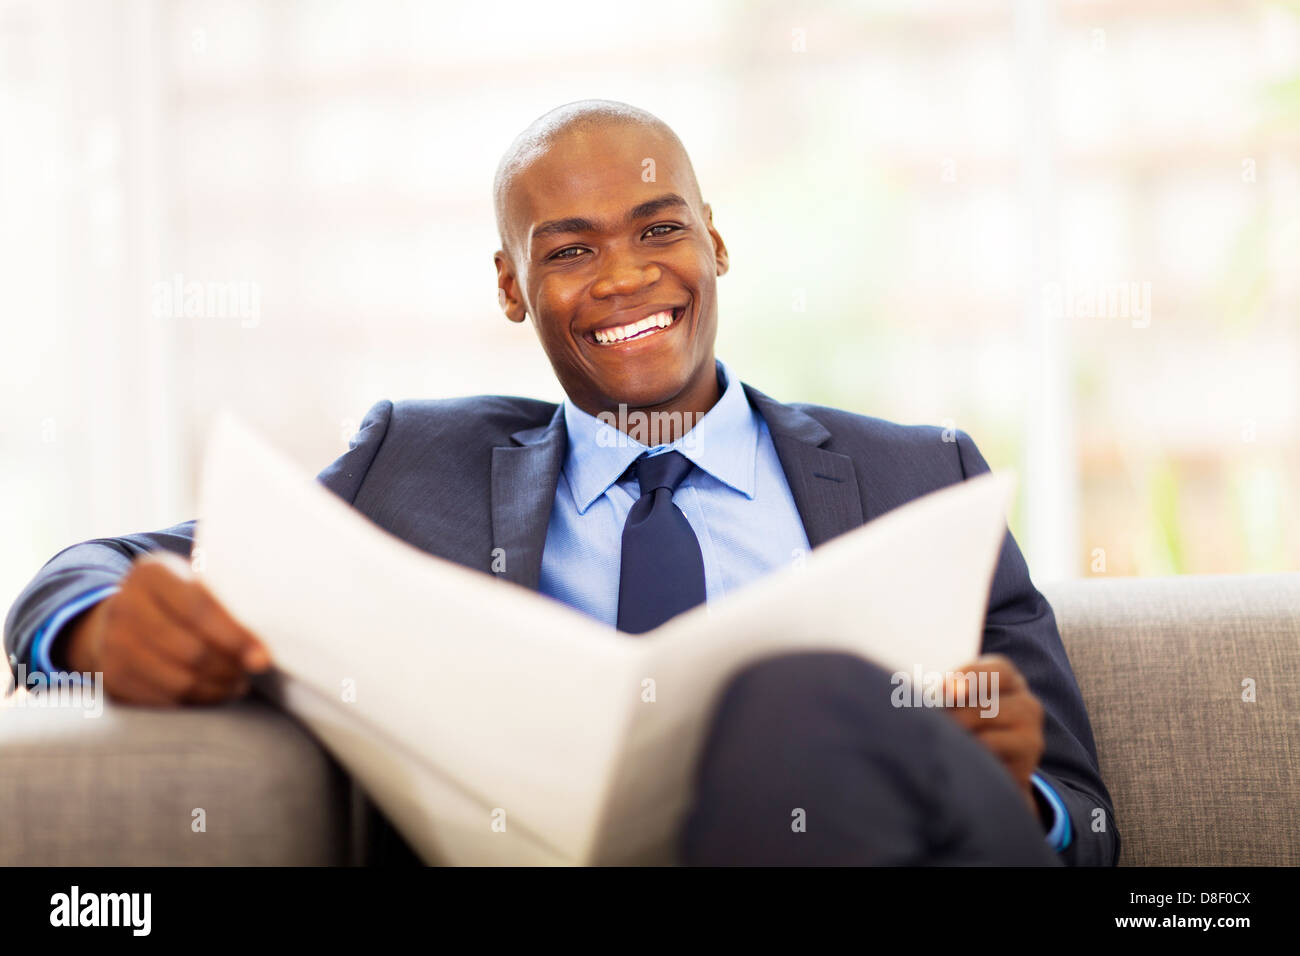 african american businessman reading newspaper on sofa - Stock Image